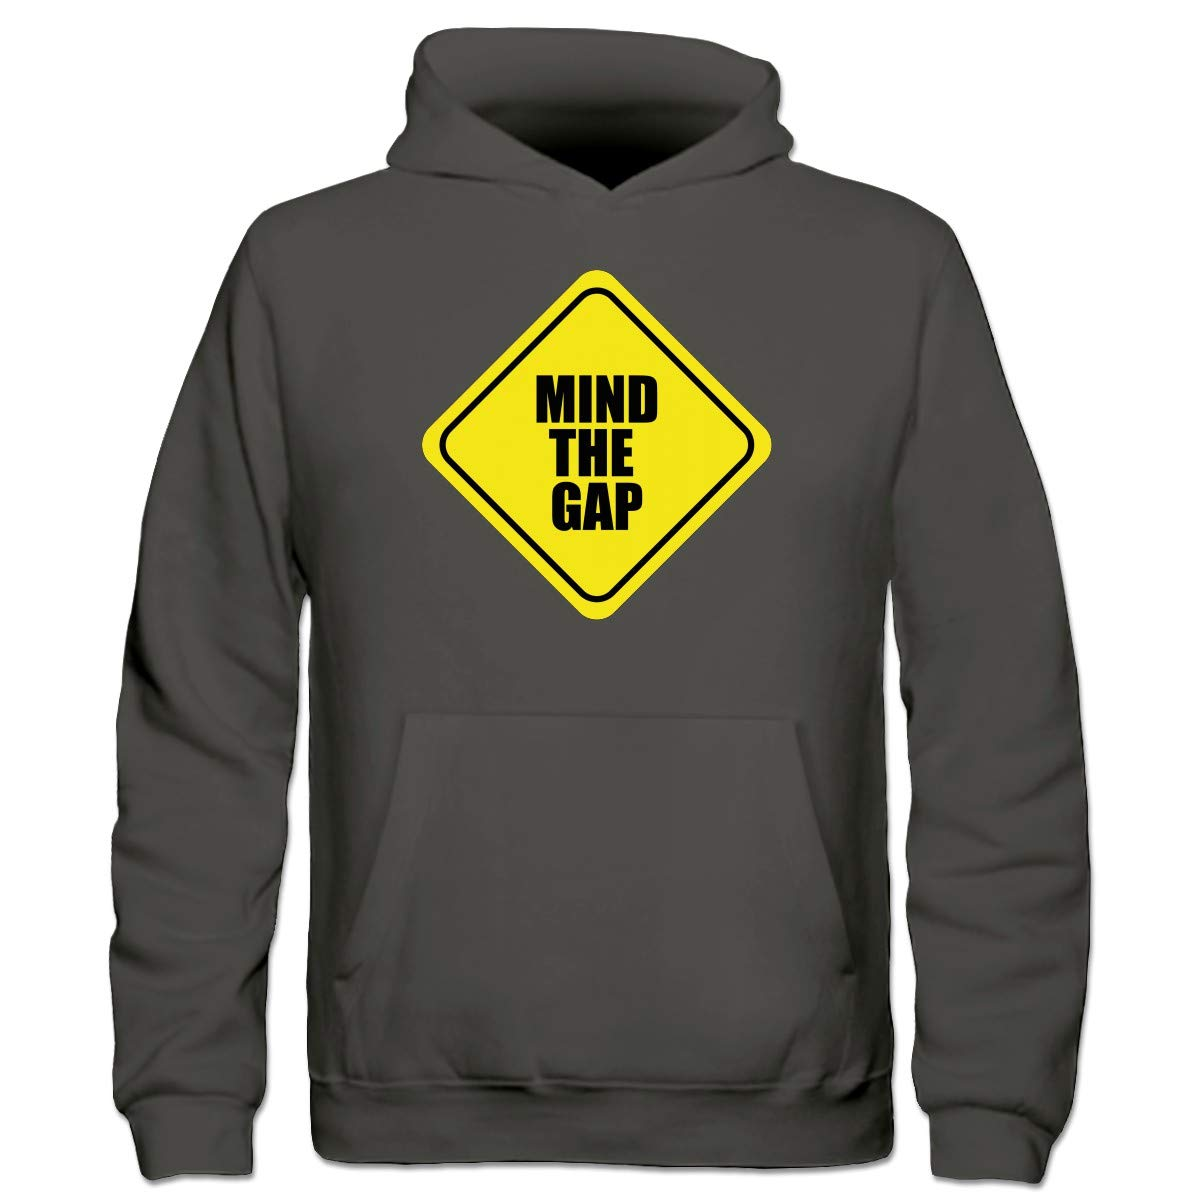 Shirtcity Sudadera con Capucha niño Mind The Gap Warning by: Amazon.es: Ropa y accesorios